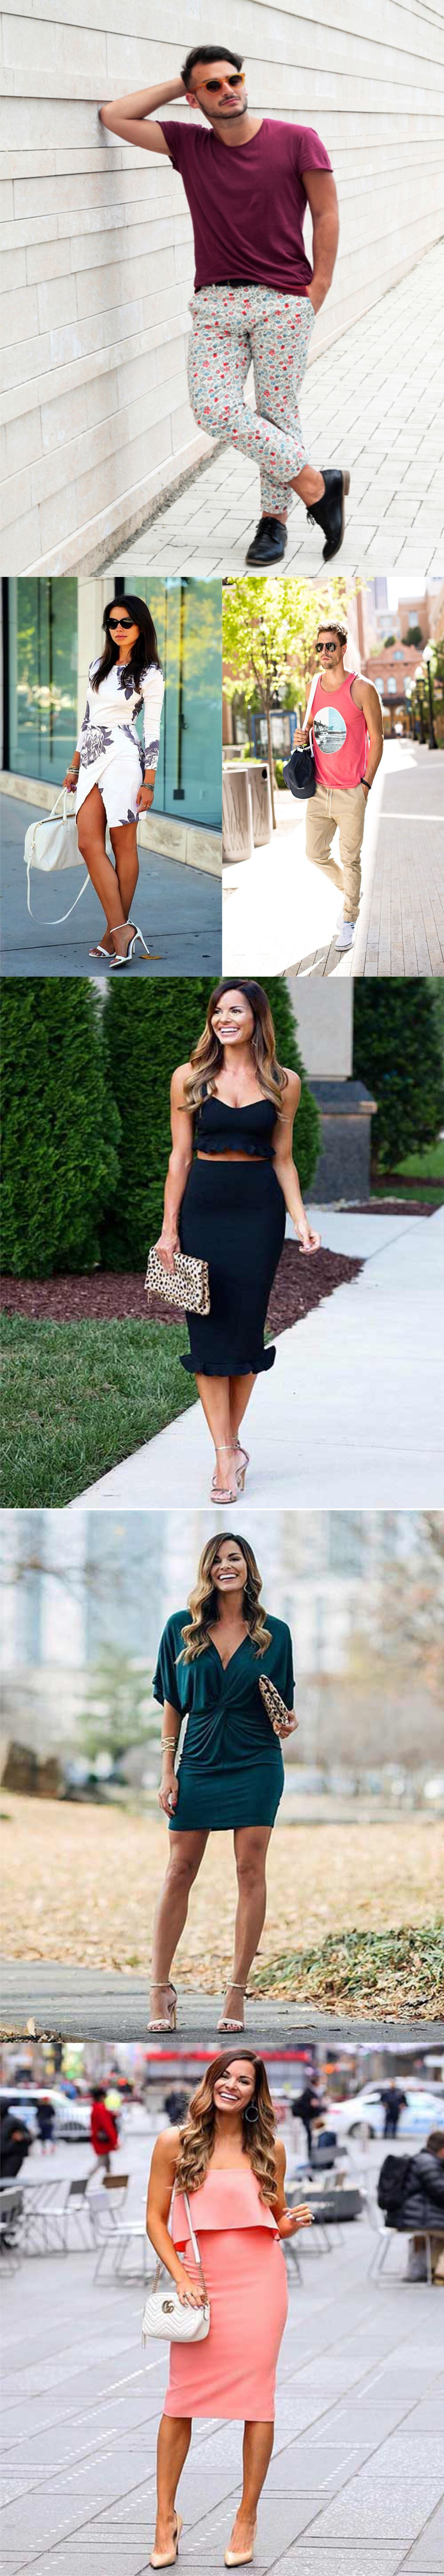 All New Awesome Farewell party outfit ideas 2018